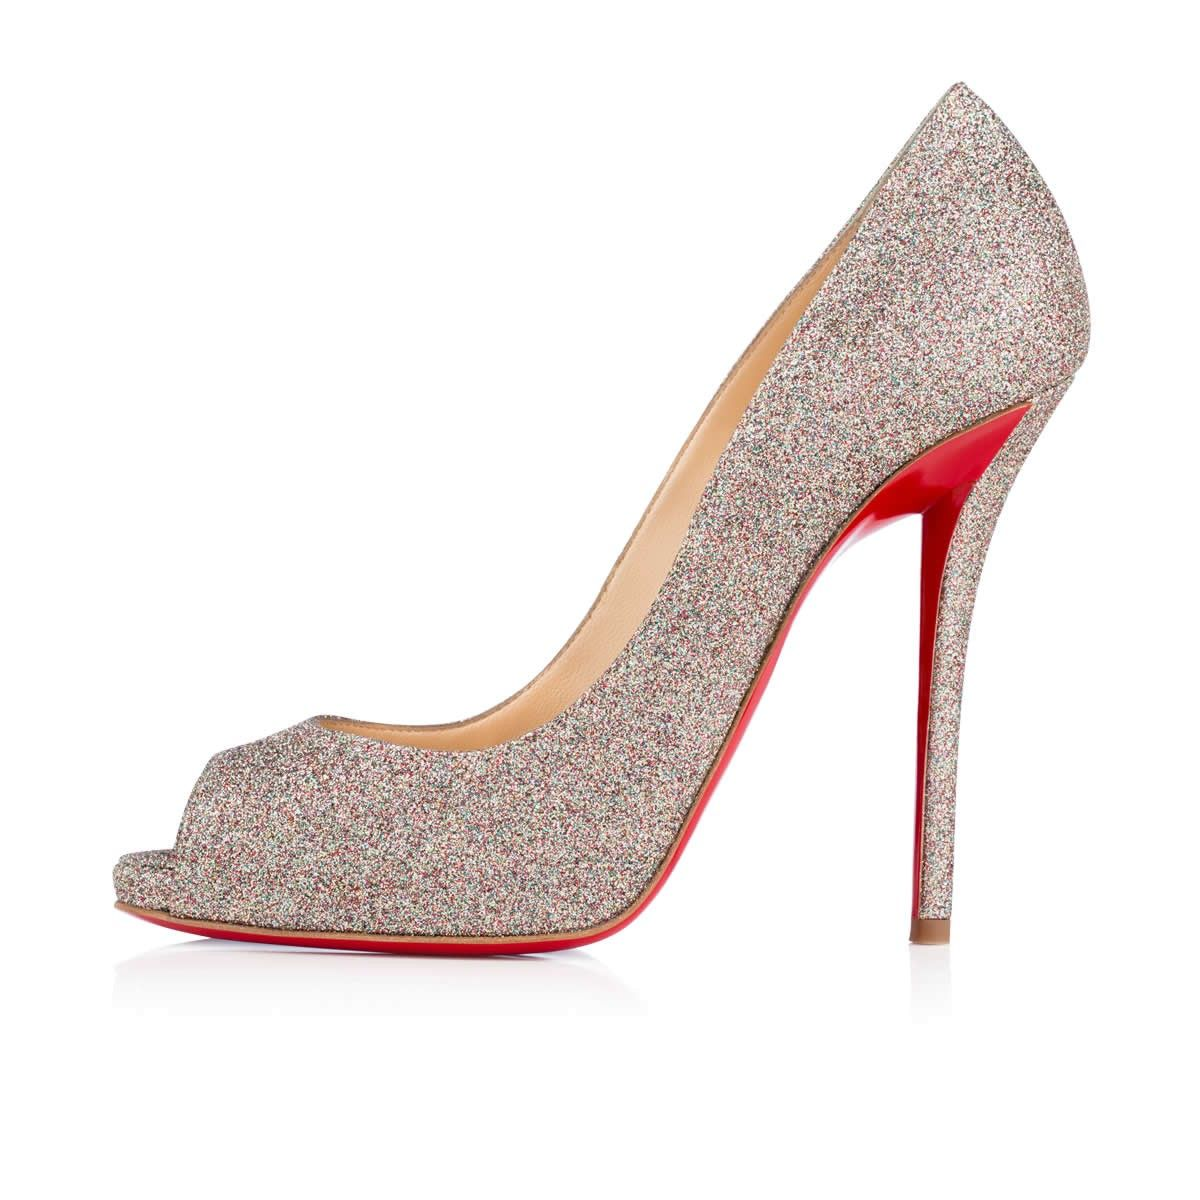 91b5f7afd7 Christian Louboutin : Emmanuelle 120mm Multi Glitter Party Shoes, Perfect  Party, Winter Season,